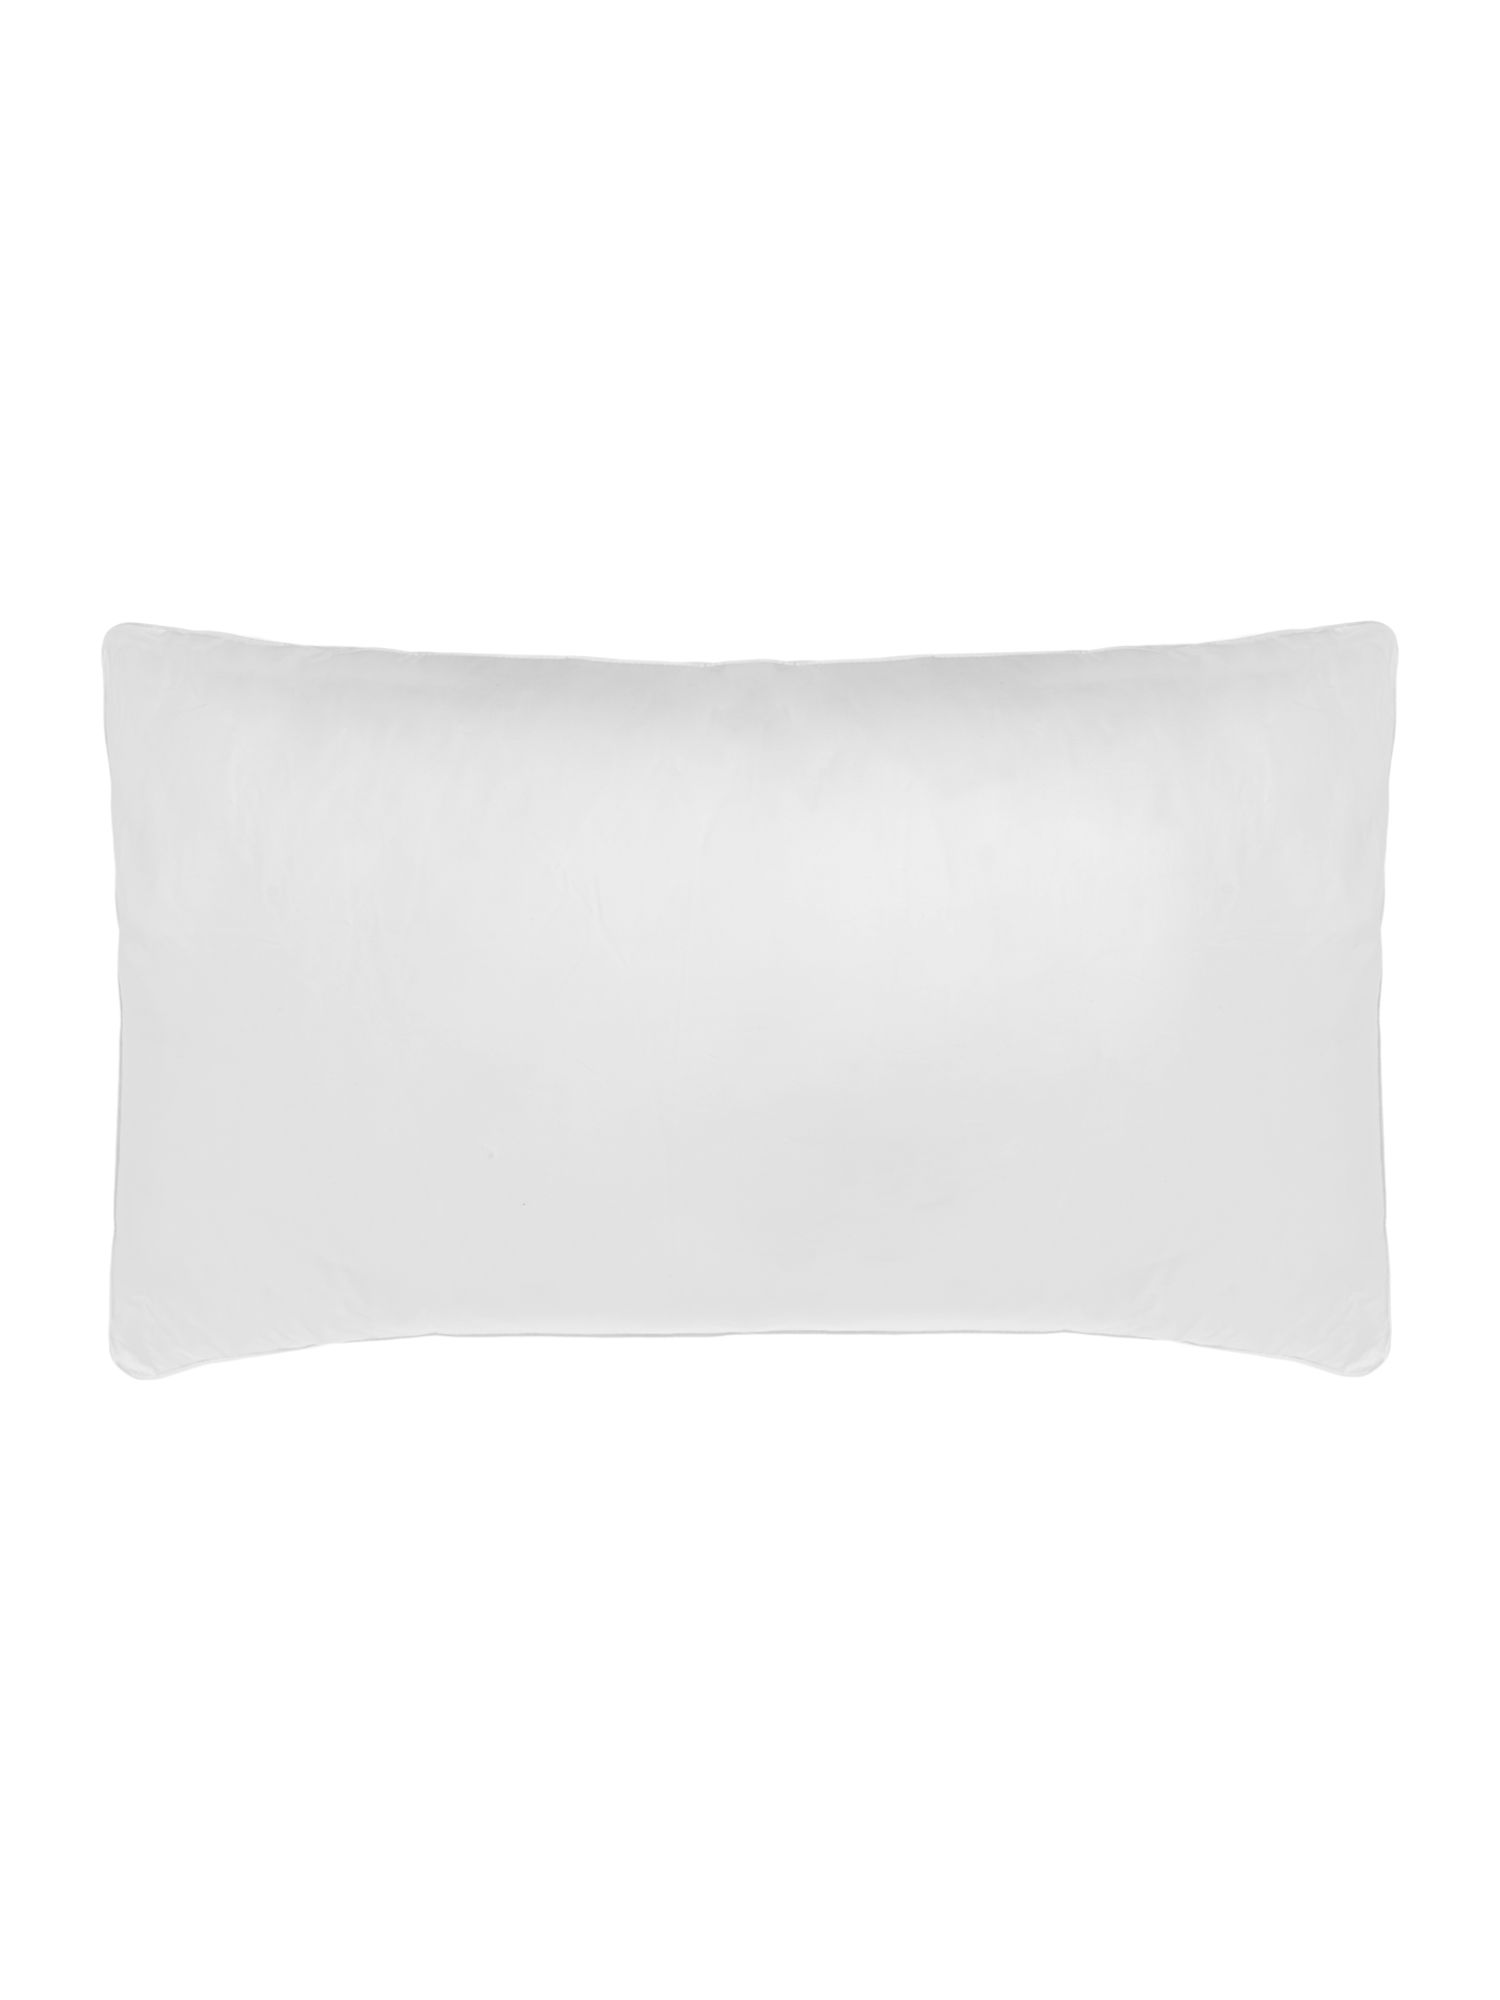 Dynasty mircofibre pillow